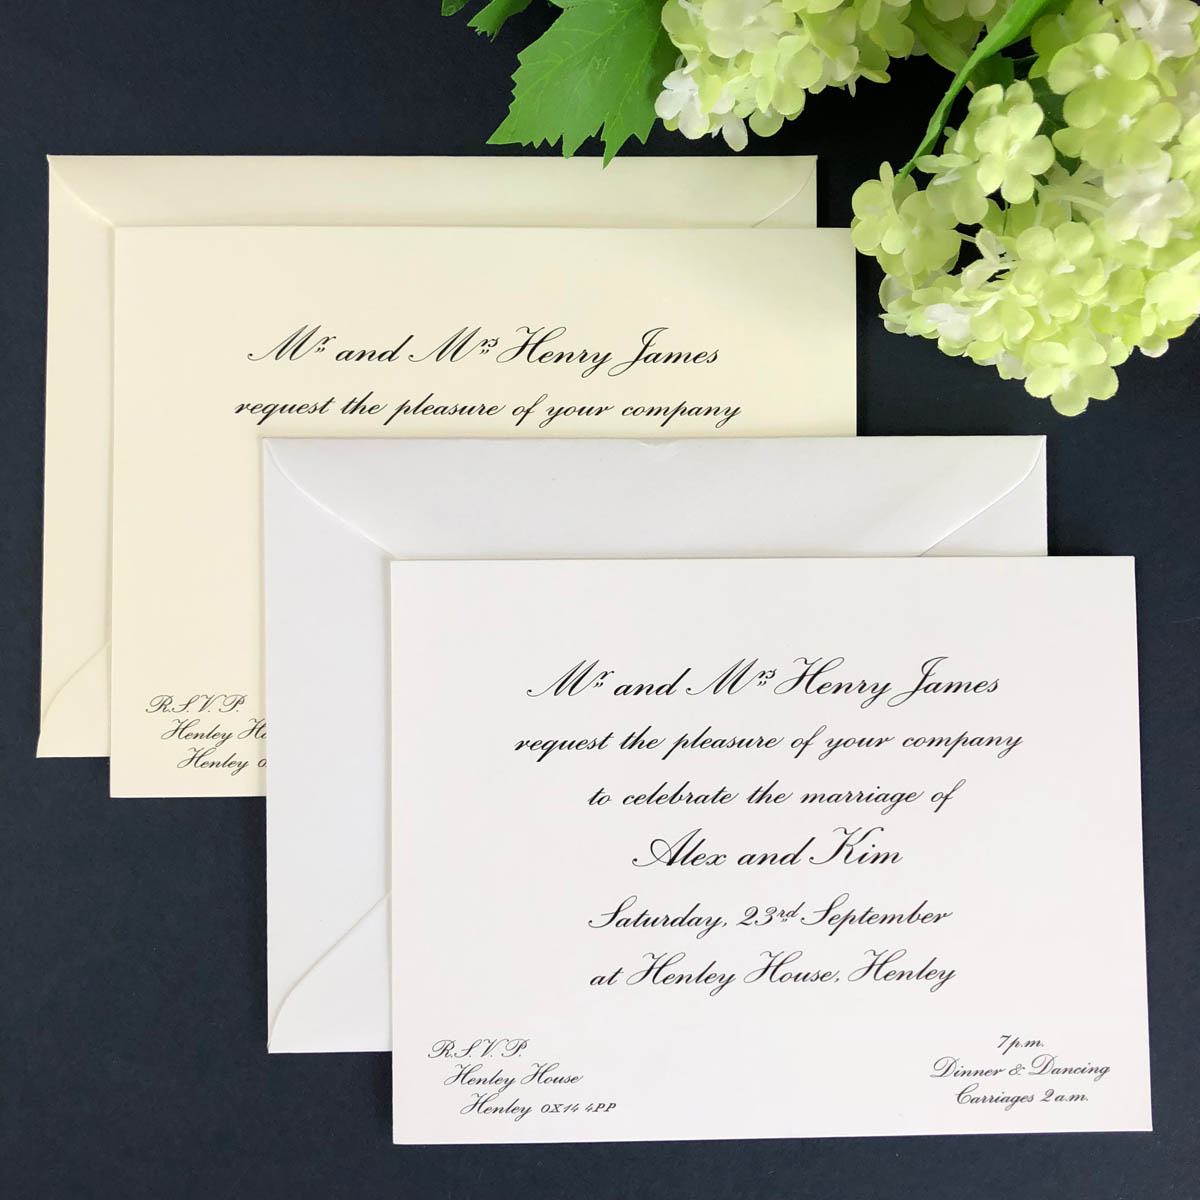 wedding reception invitations